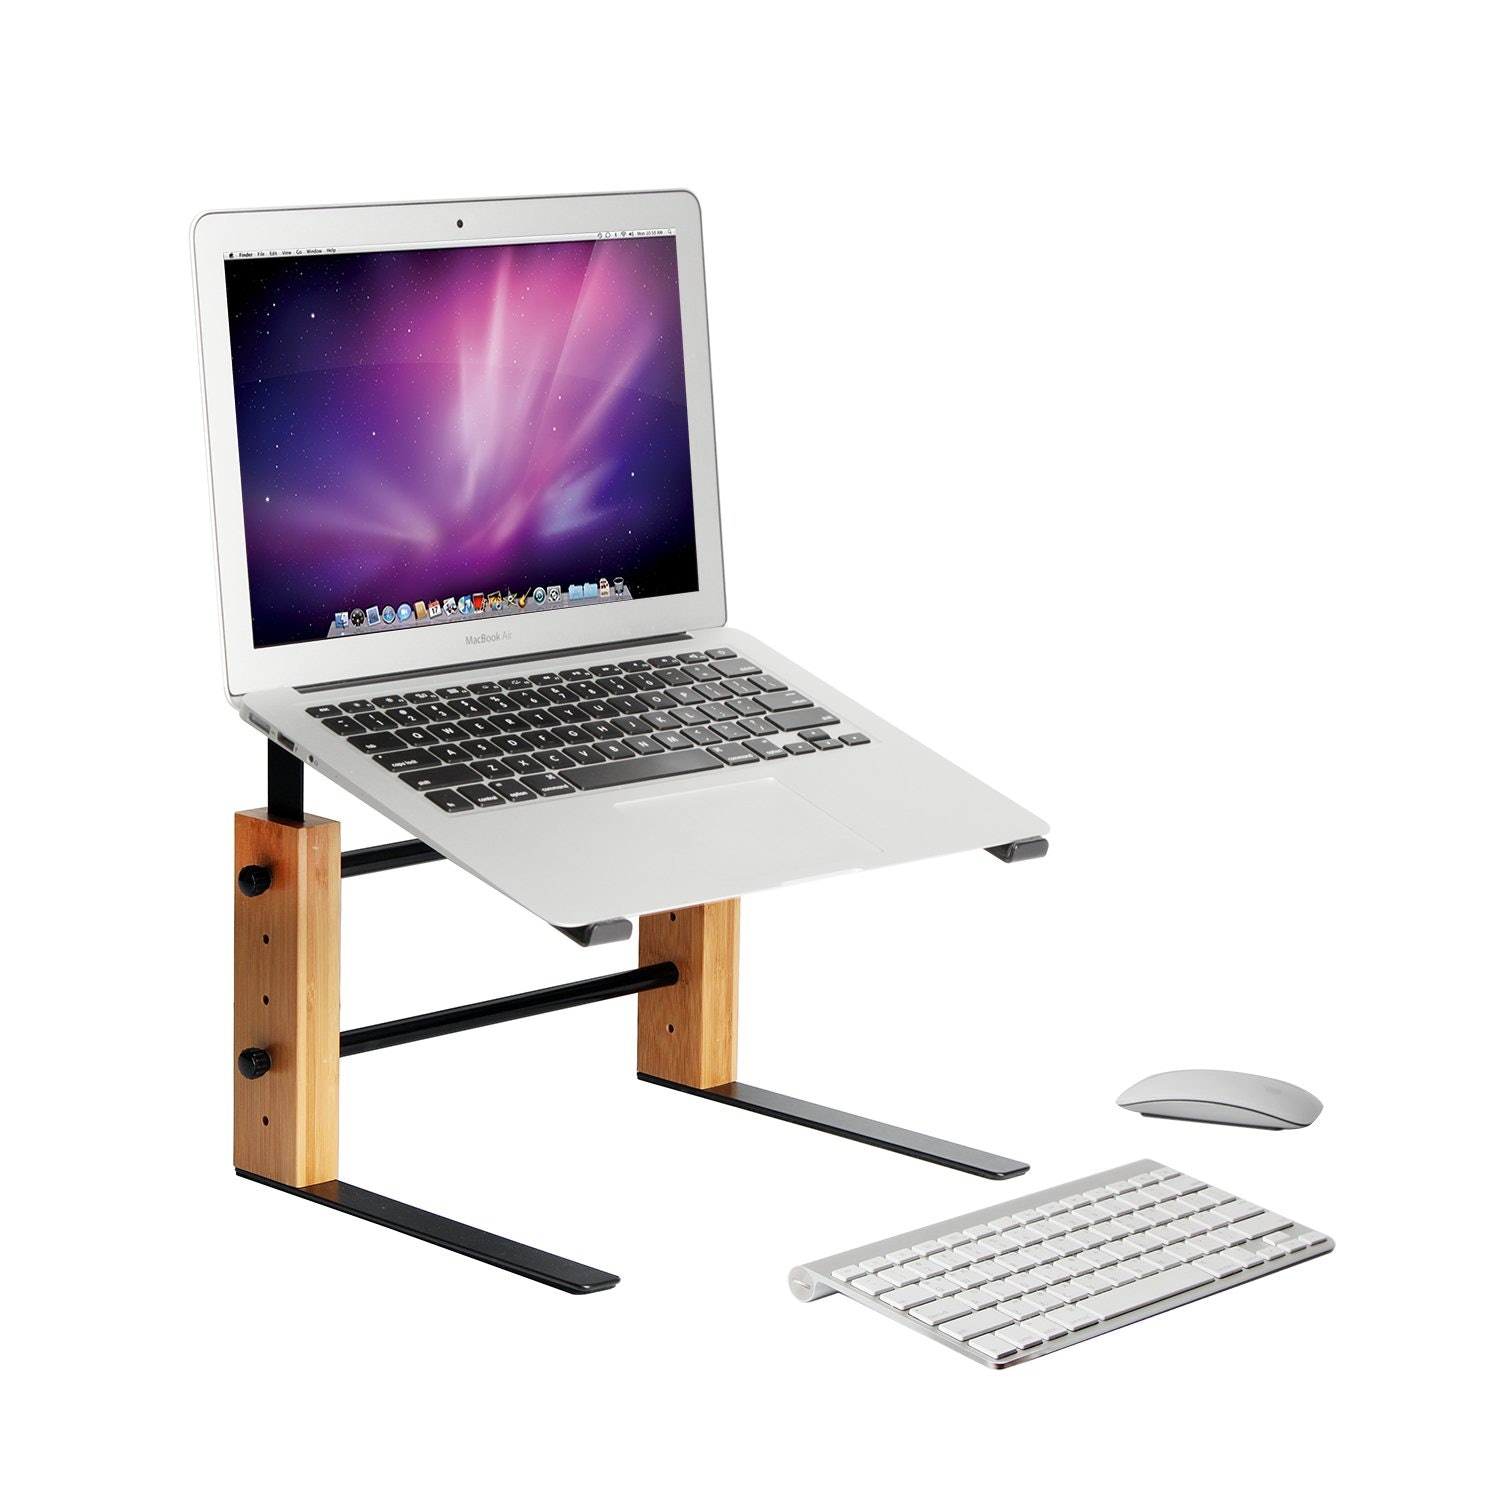 JackCubeDesign Laptop Computer Stand